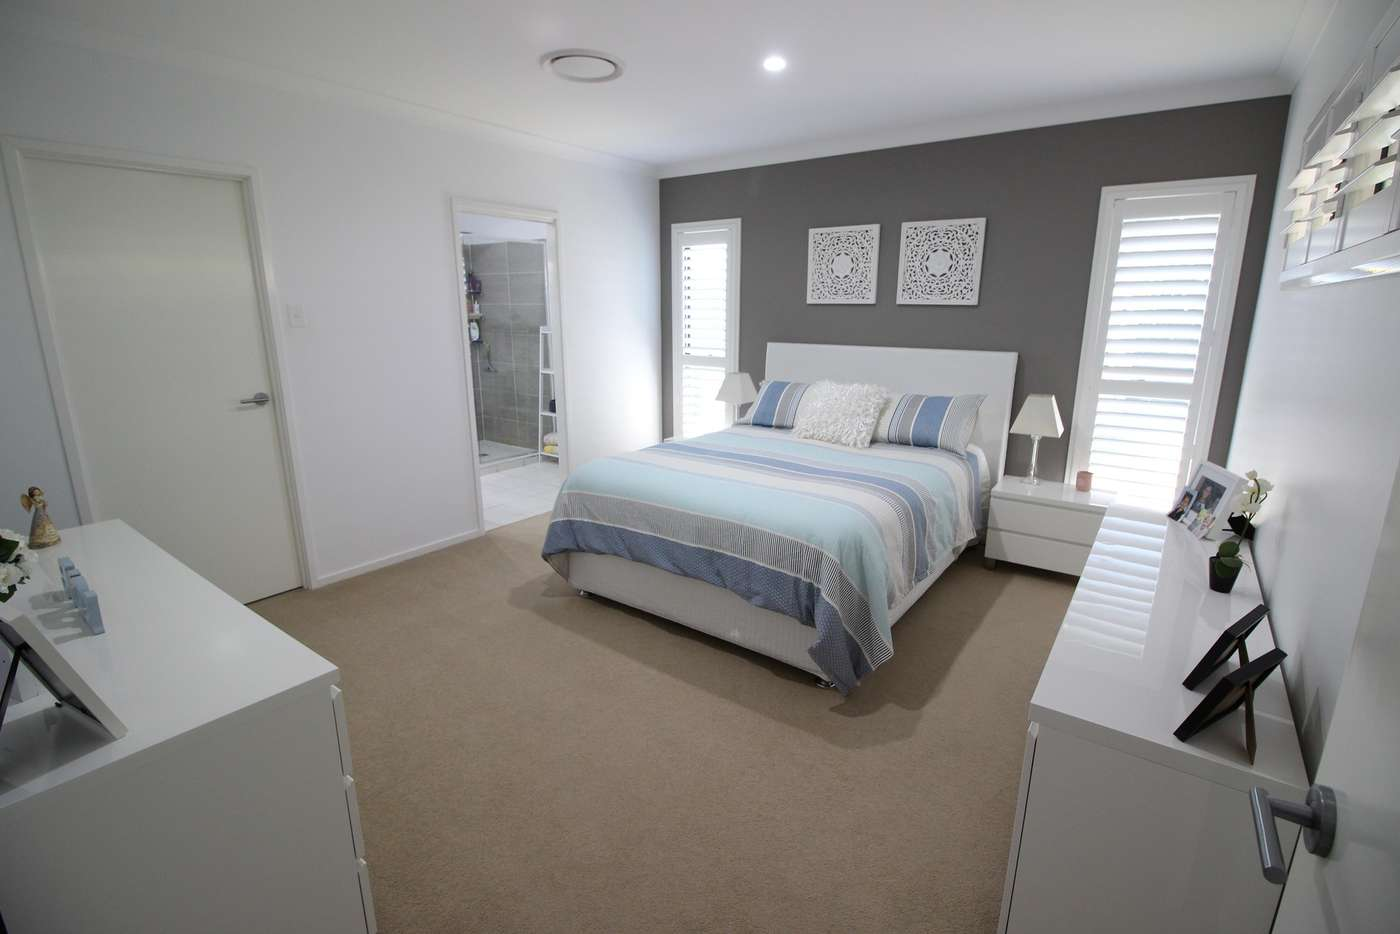 Sixth view of Homely house listing, 40 Ivory Circuit, Sapphire Beach NSW 2450